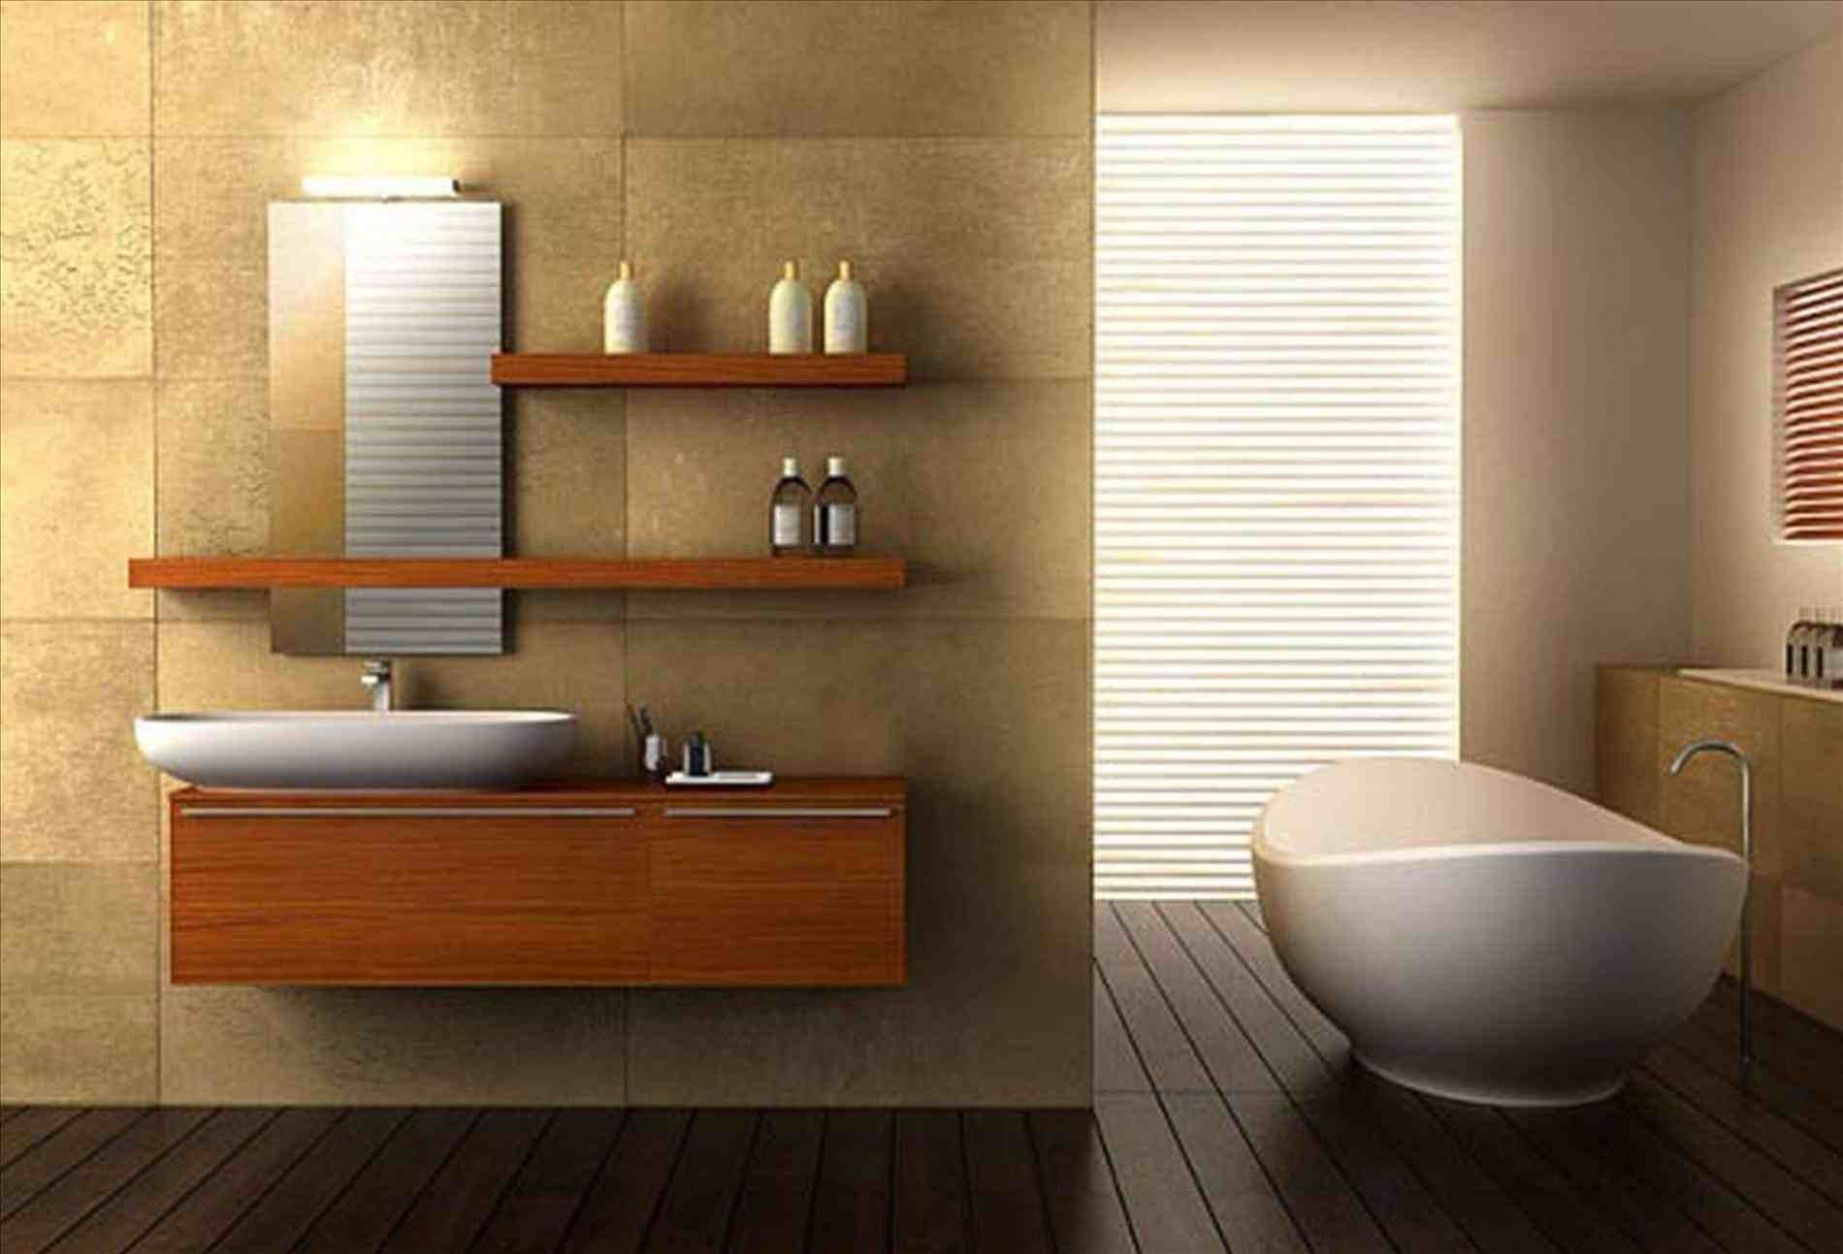 kerala home bathroom tile designs (With images) | Guest bathroom ..